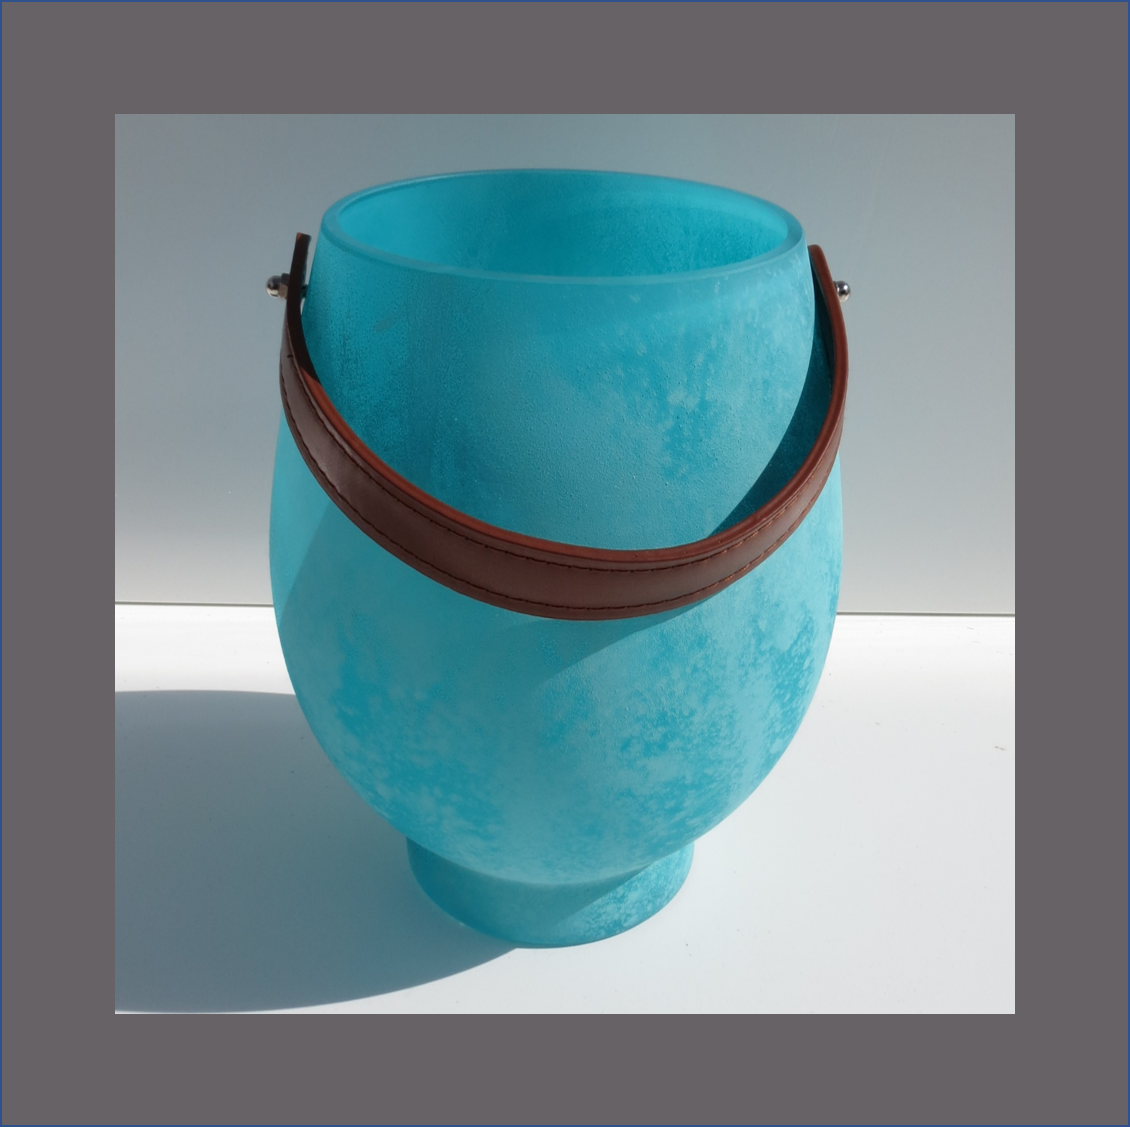 turquoise-and-leather-vase